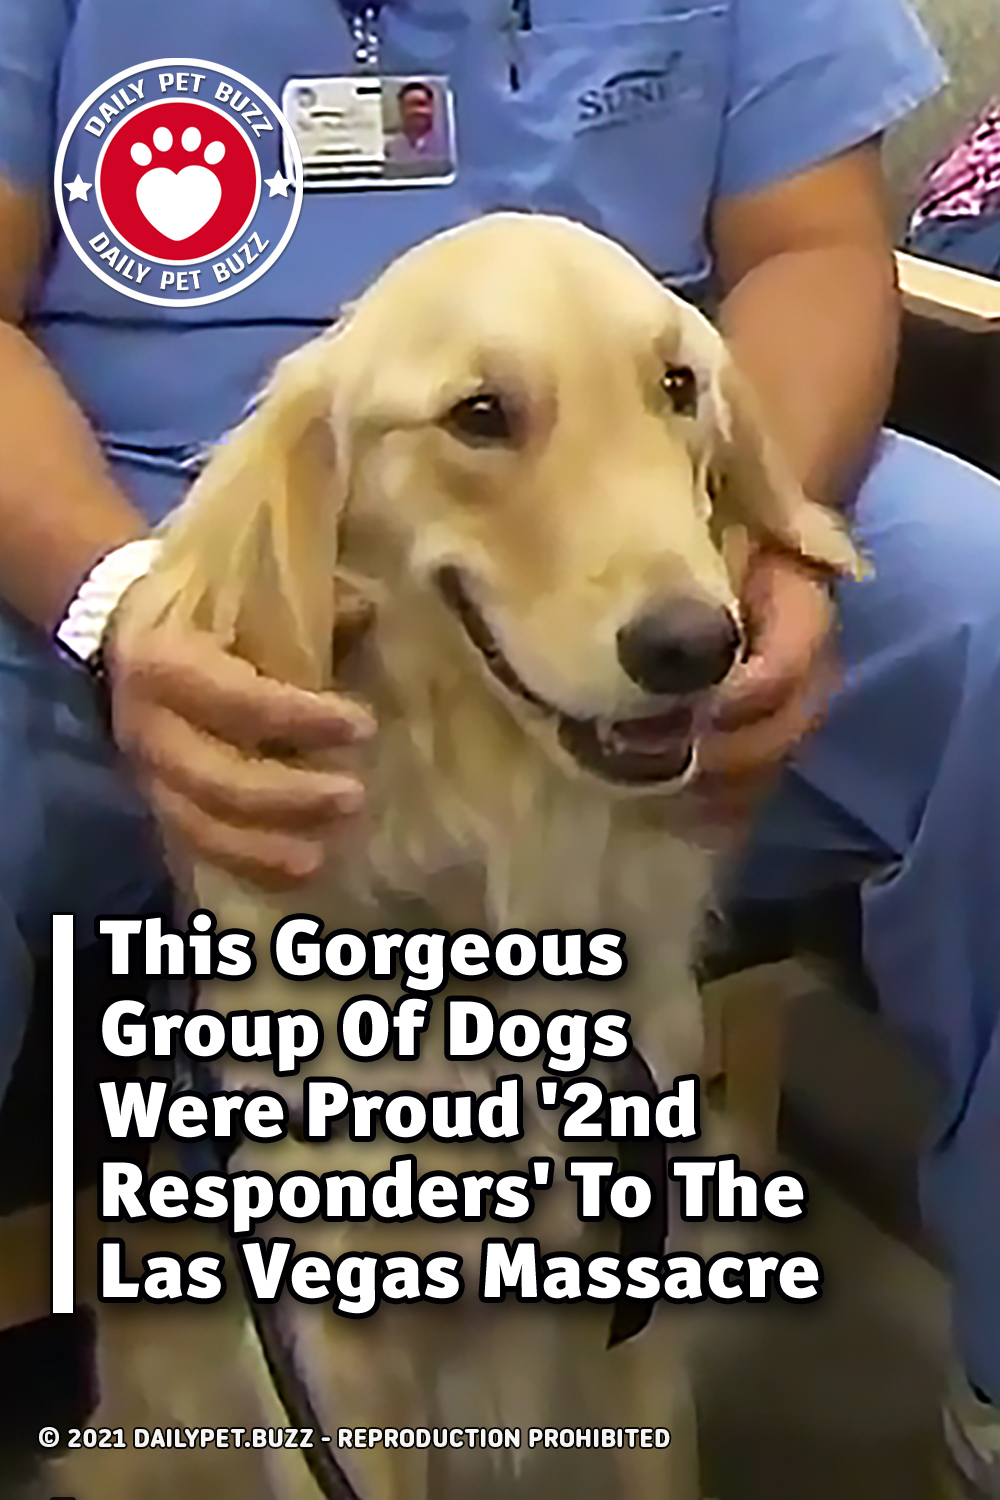 This Gorgeous Group Of Dogs Were Proud \'2nd Responders\' To The Las Vegas Massacre